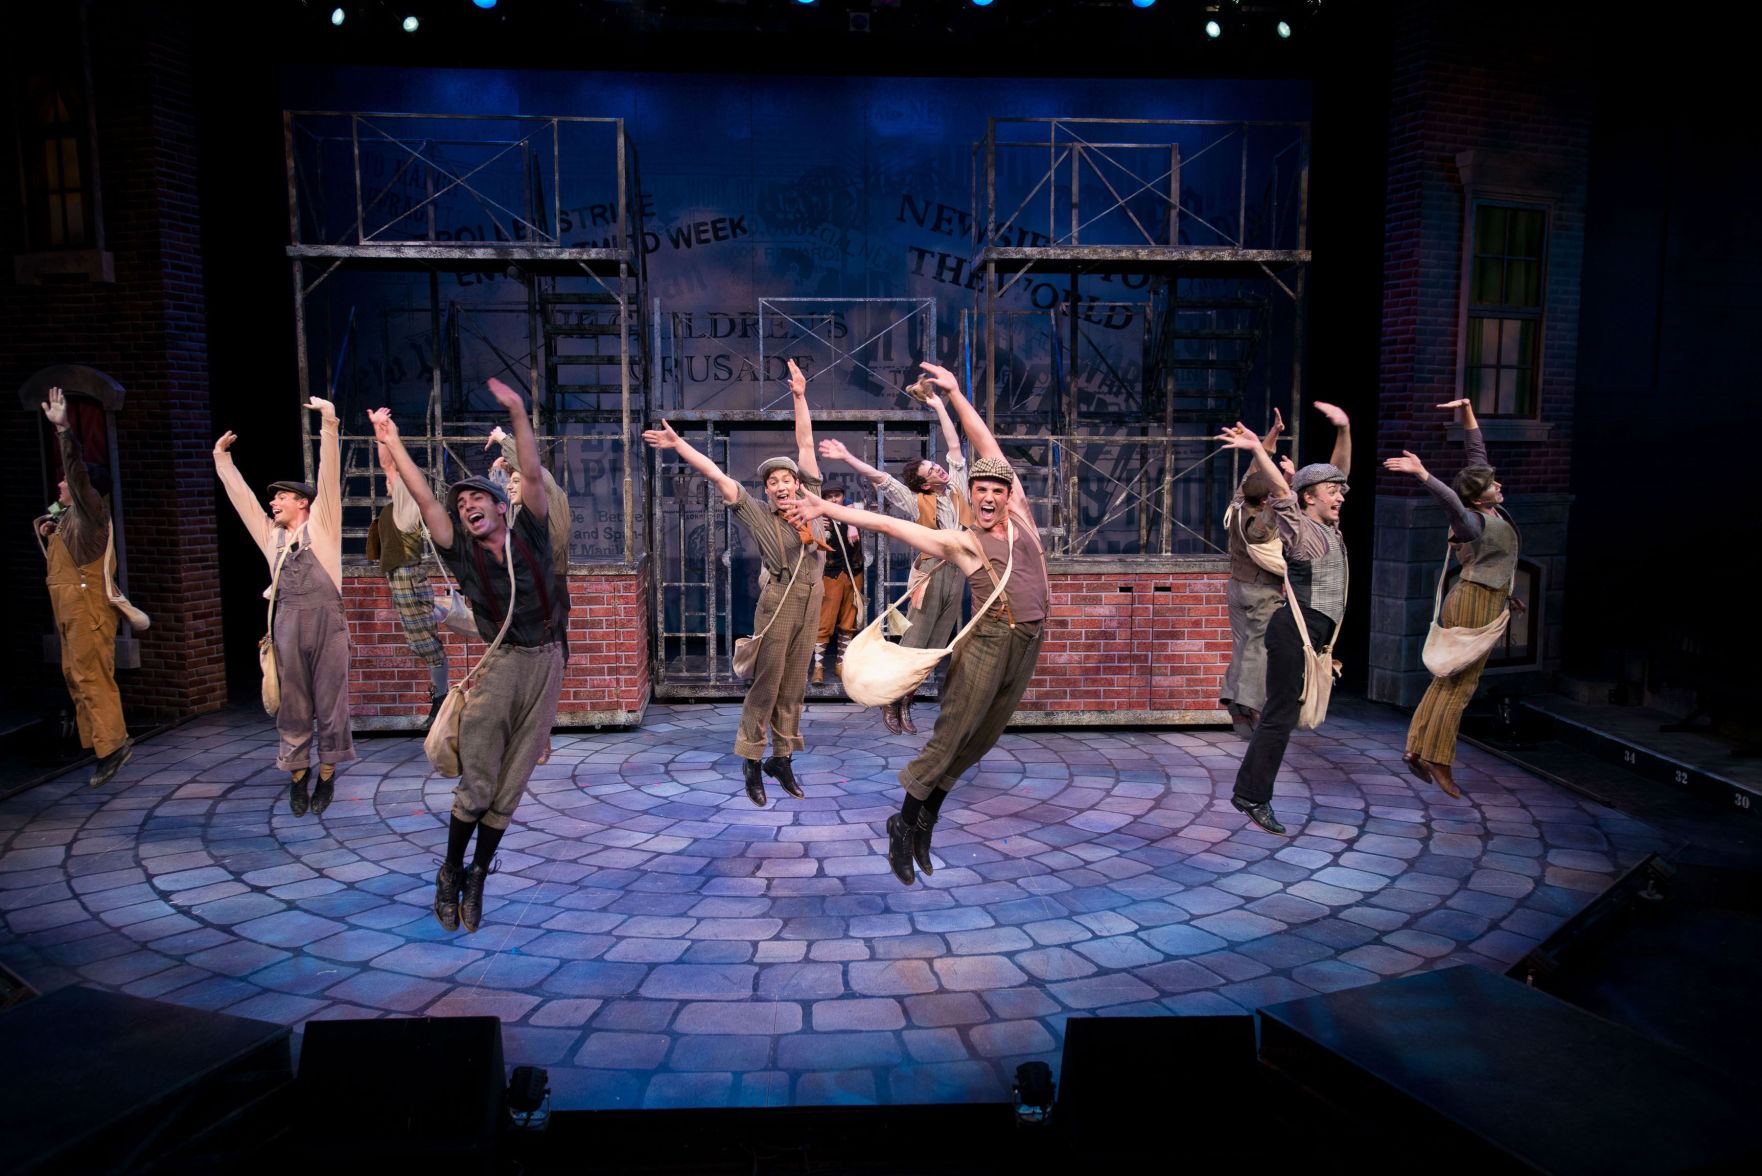 The newsies take flight. Photo | Paul Silla